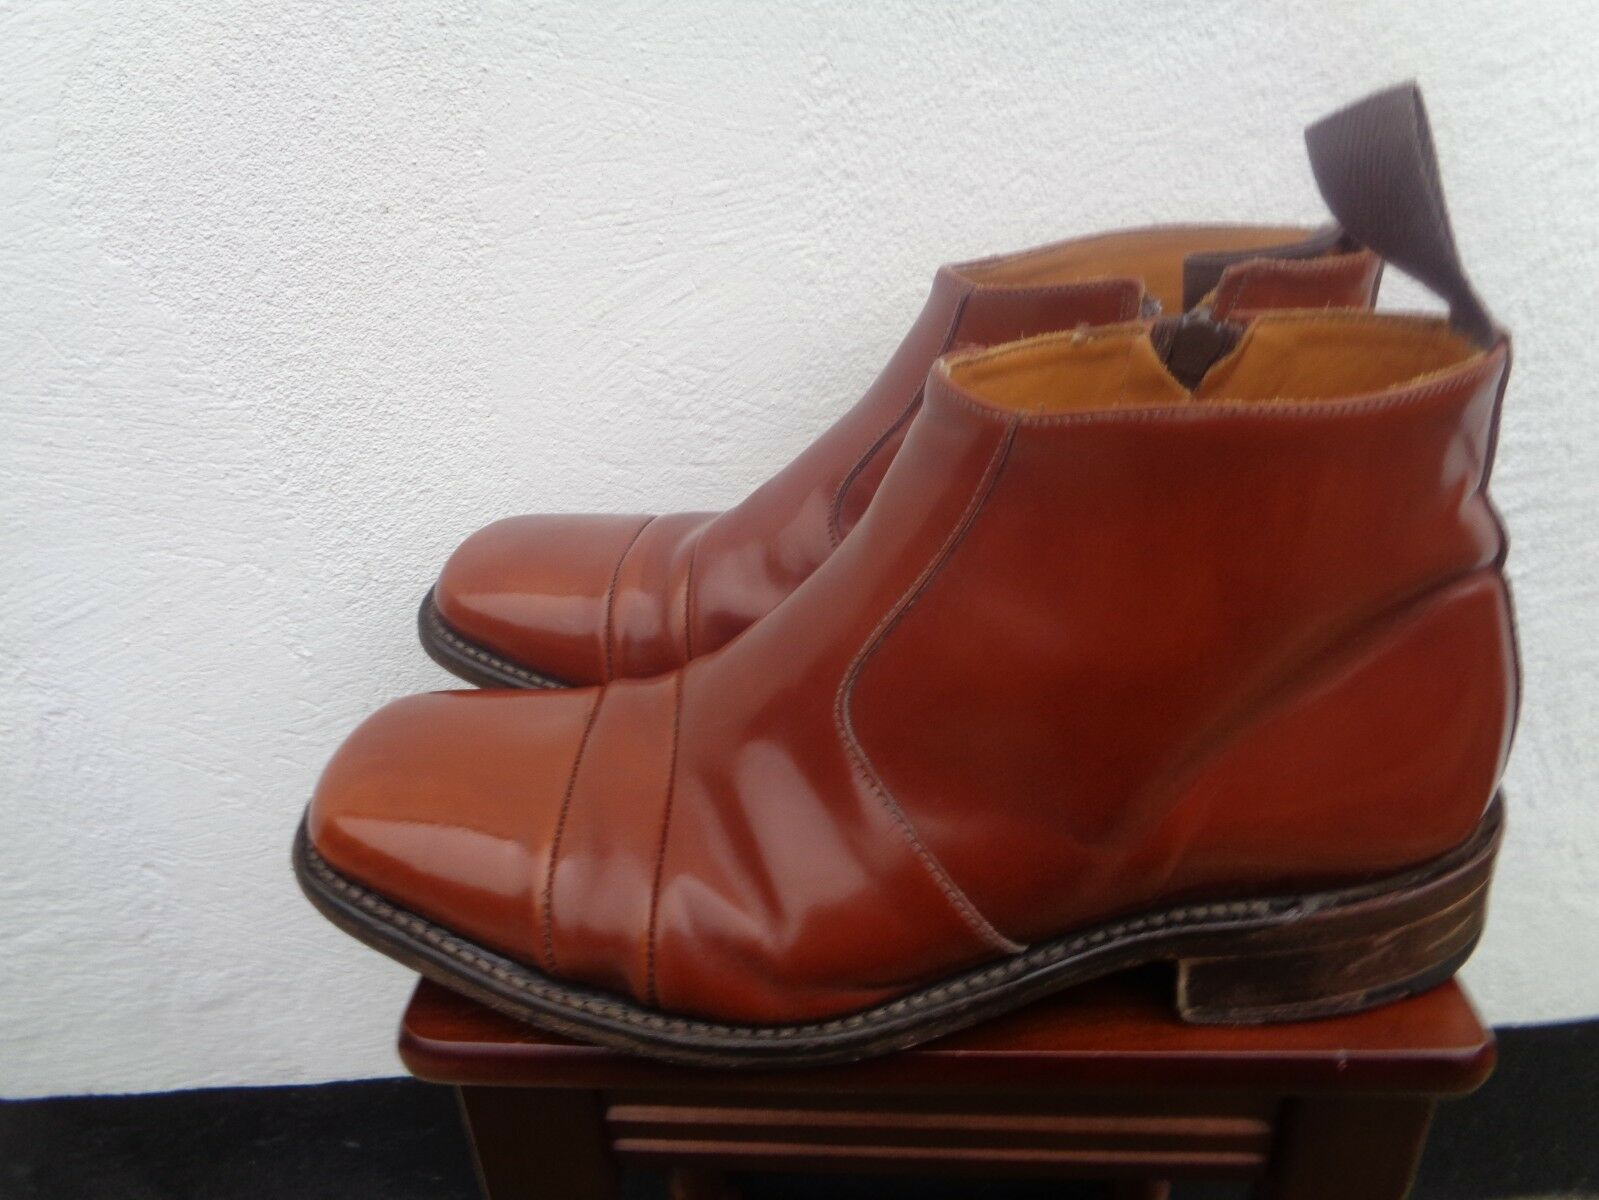 Lionheart made in England size 9 brown Chelsea boots